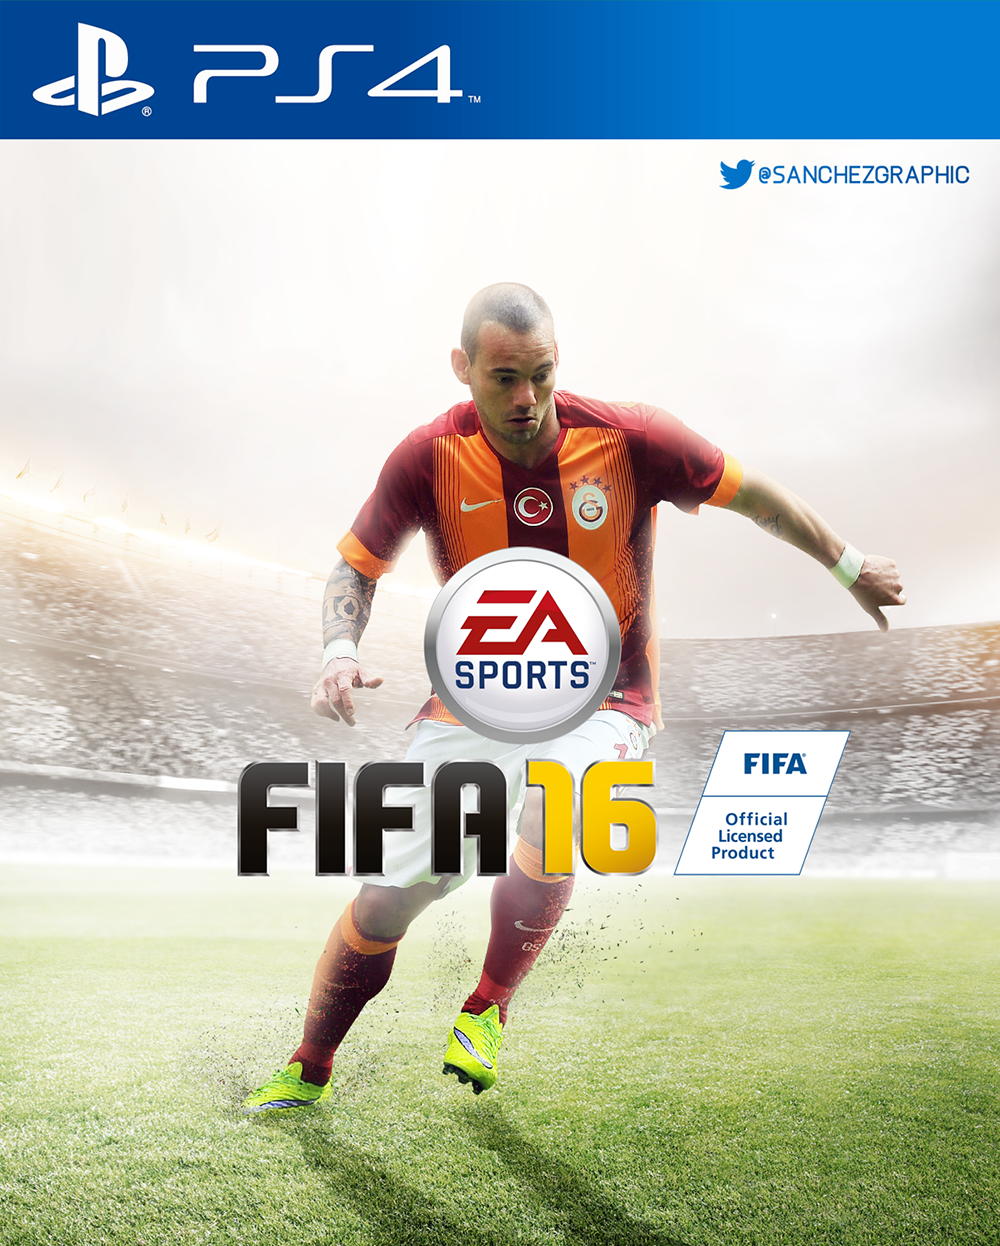 fifa 16 ps4 wesley sneijder by sanchezgraphic on. Black Bedroom Furniture Sets. Home Design Ideas